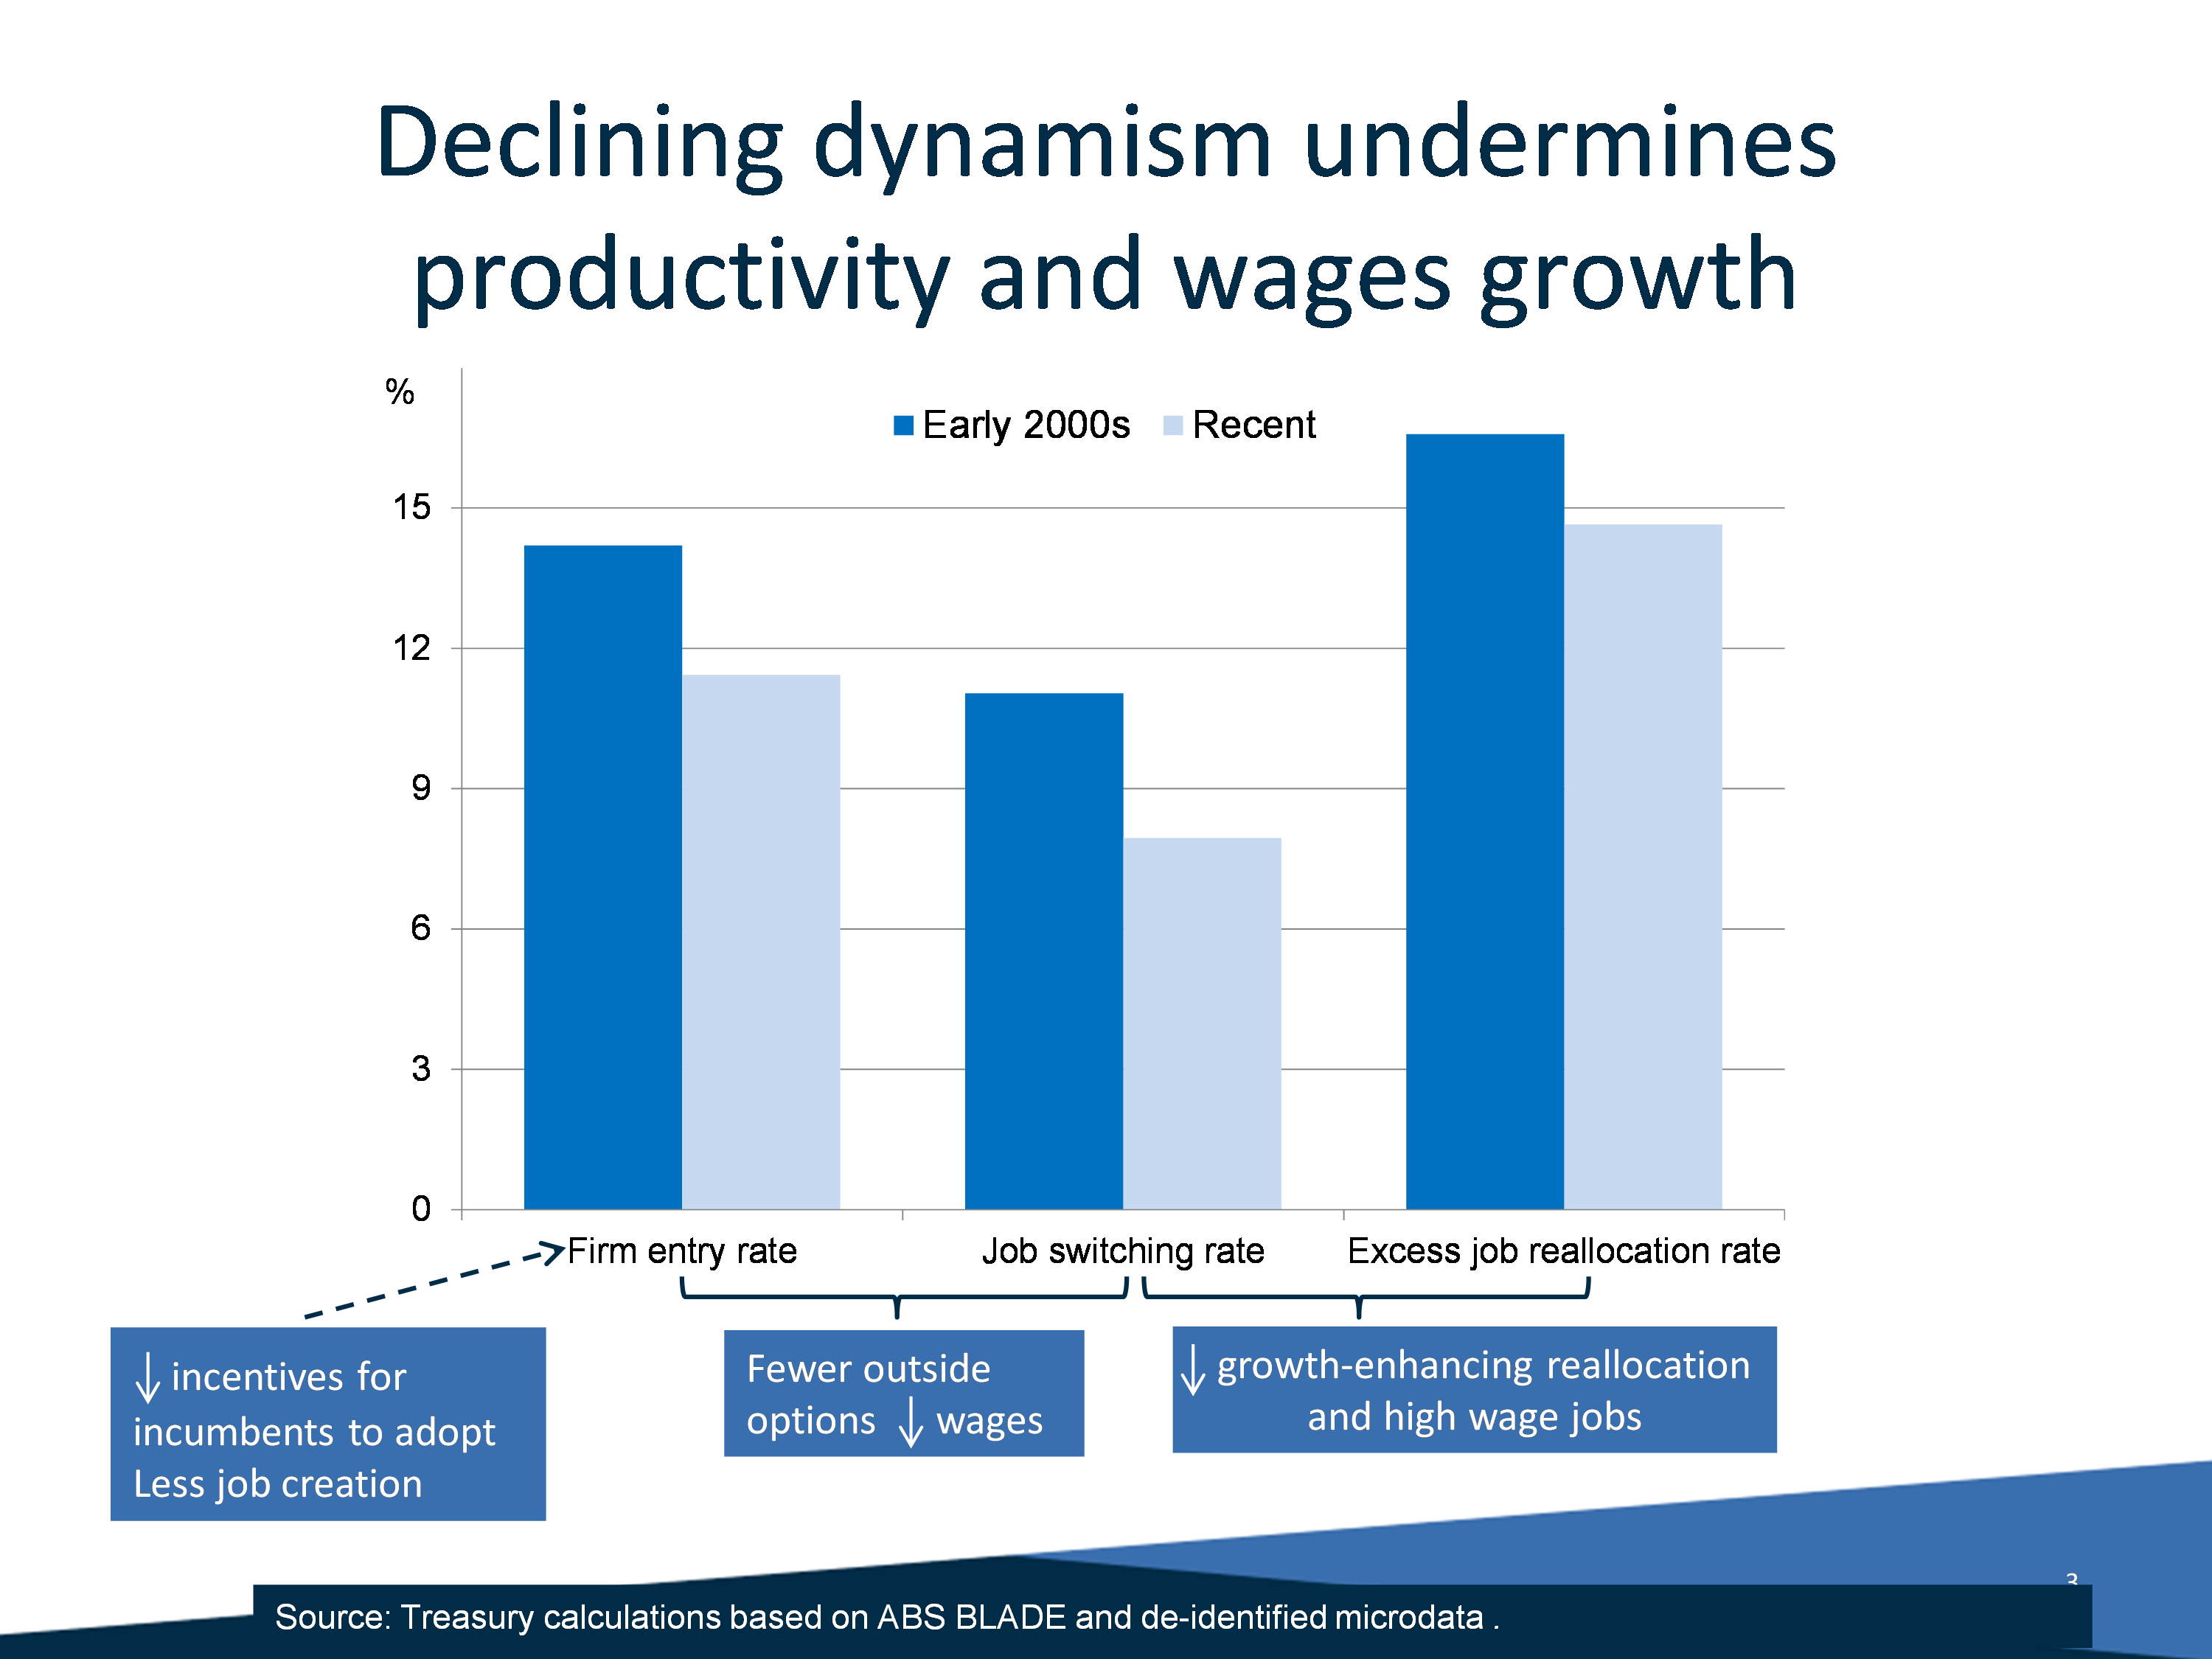 Chart: Declining dynamism undermines productivity and wages growth